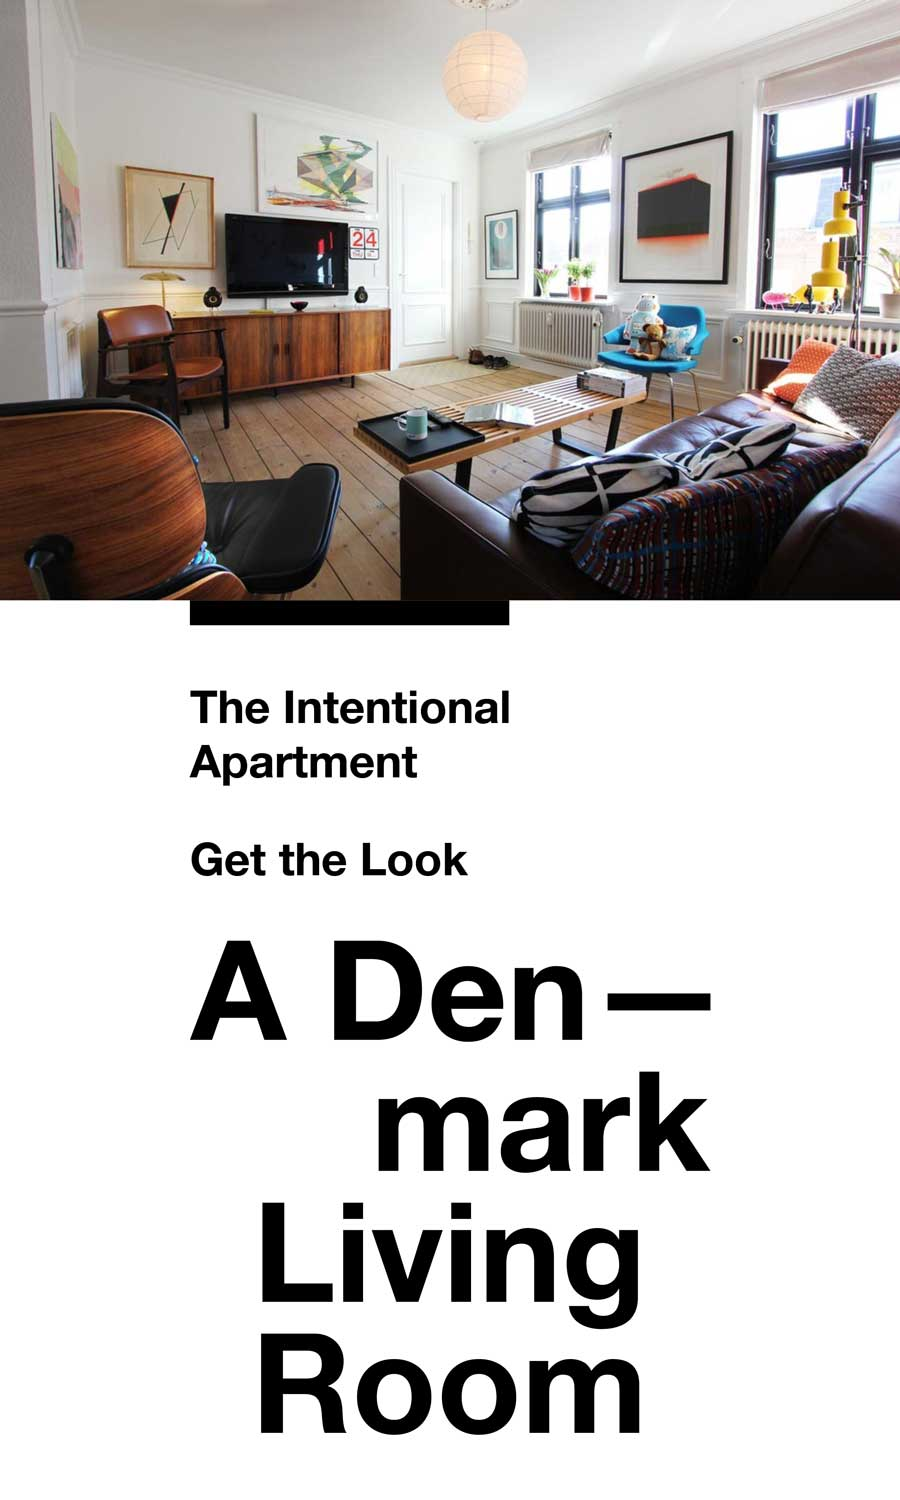 The Intentional Apartment: Get the Look - A Denmark Living Room